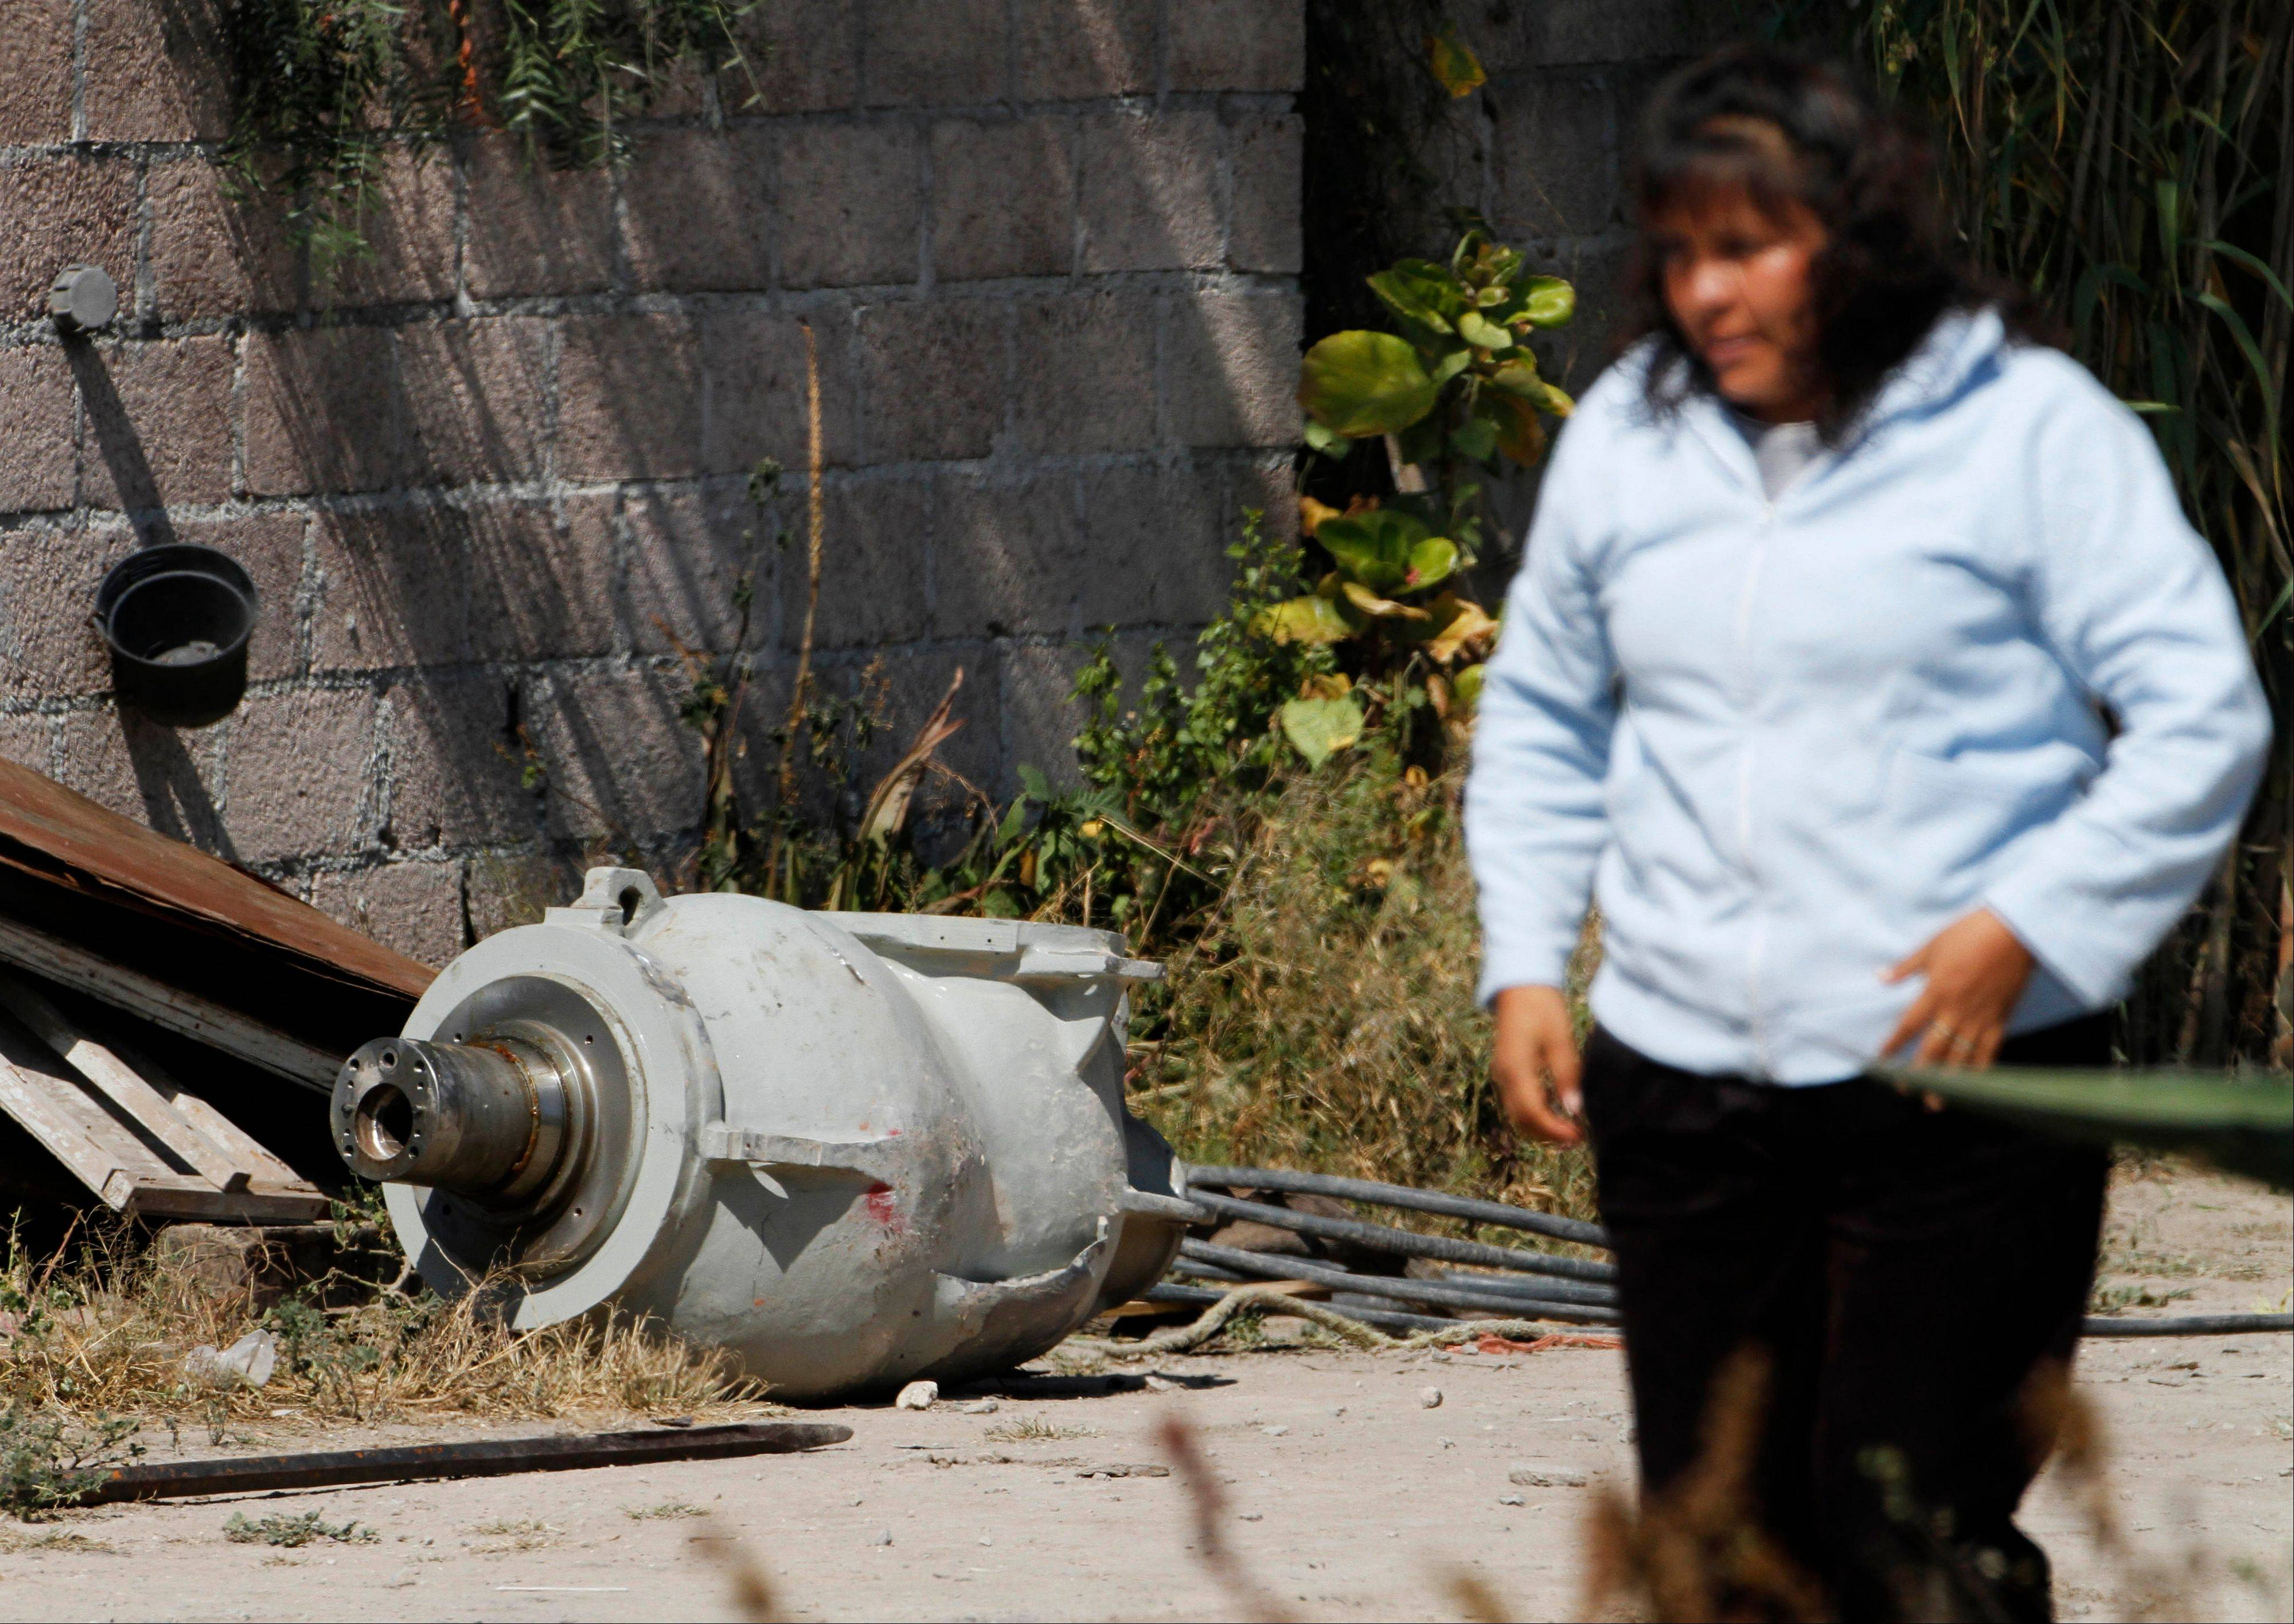 A woman walks Thursday near a radiation head that was part of a radiation therapy machine, in the patio of the family who found the abandoned equipment in a nearby field in the village of Hueypoxtla, Mexico.